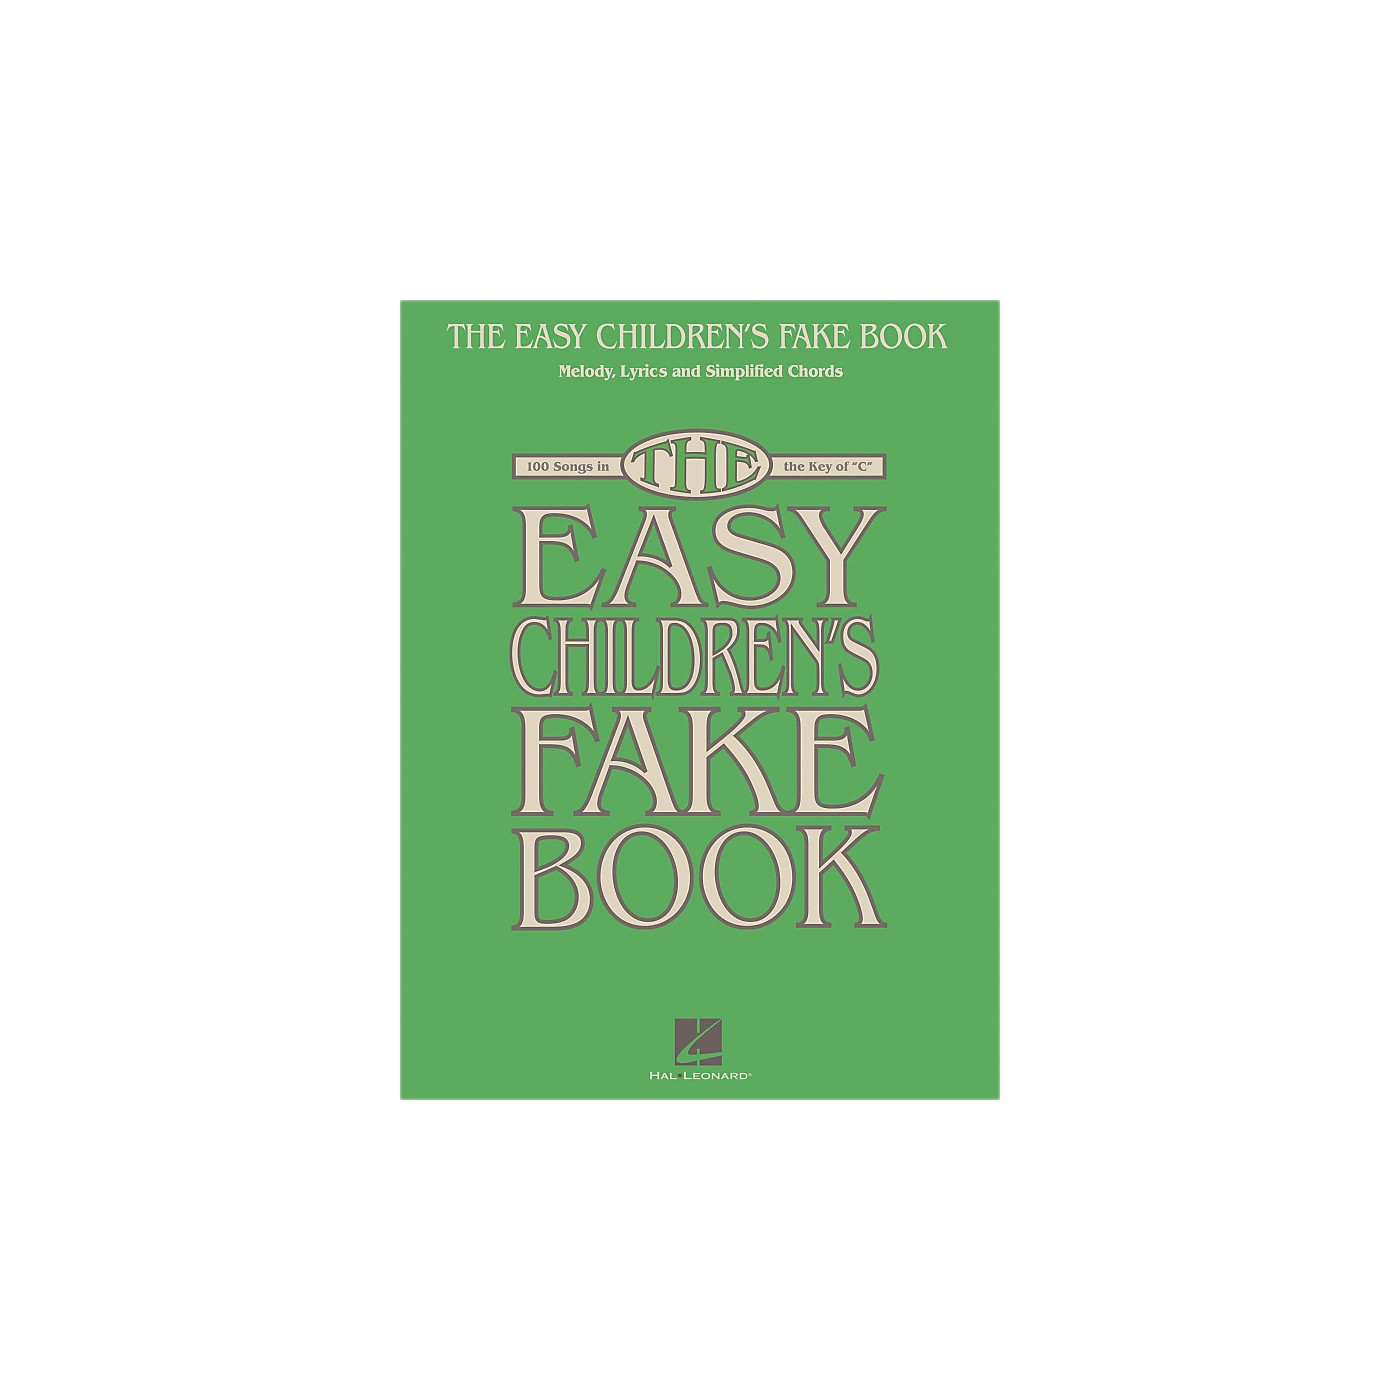 Hal Leonard The Easy Children's Fake Book - Melody Lyrics & Simplified Chords In The Key Of C thumbnail